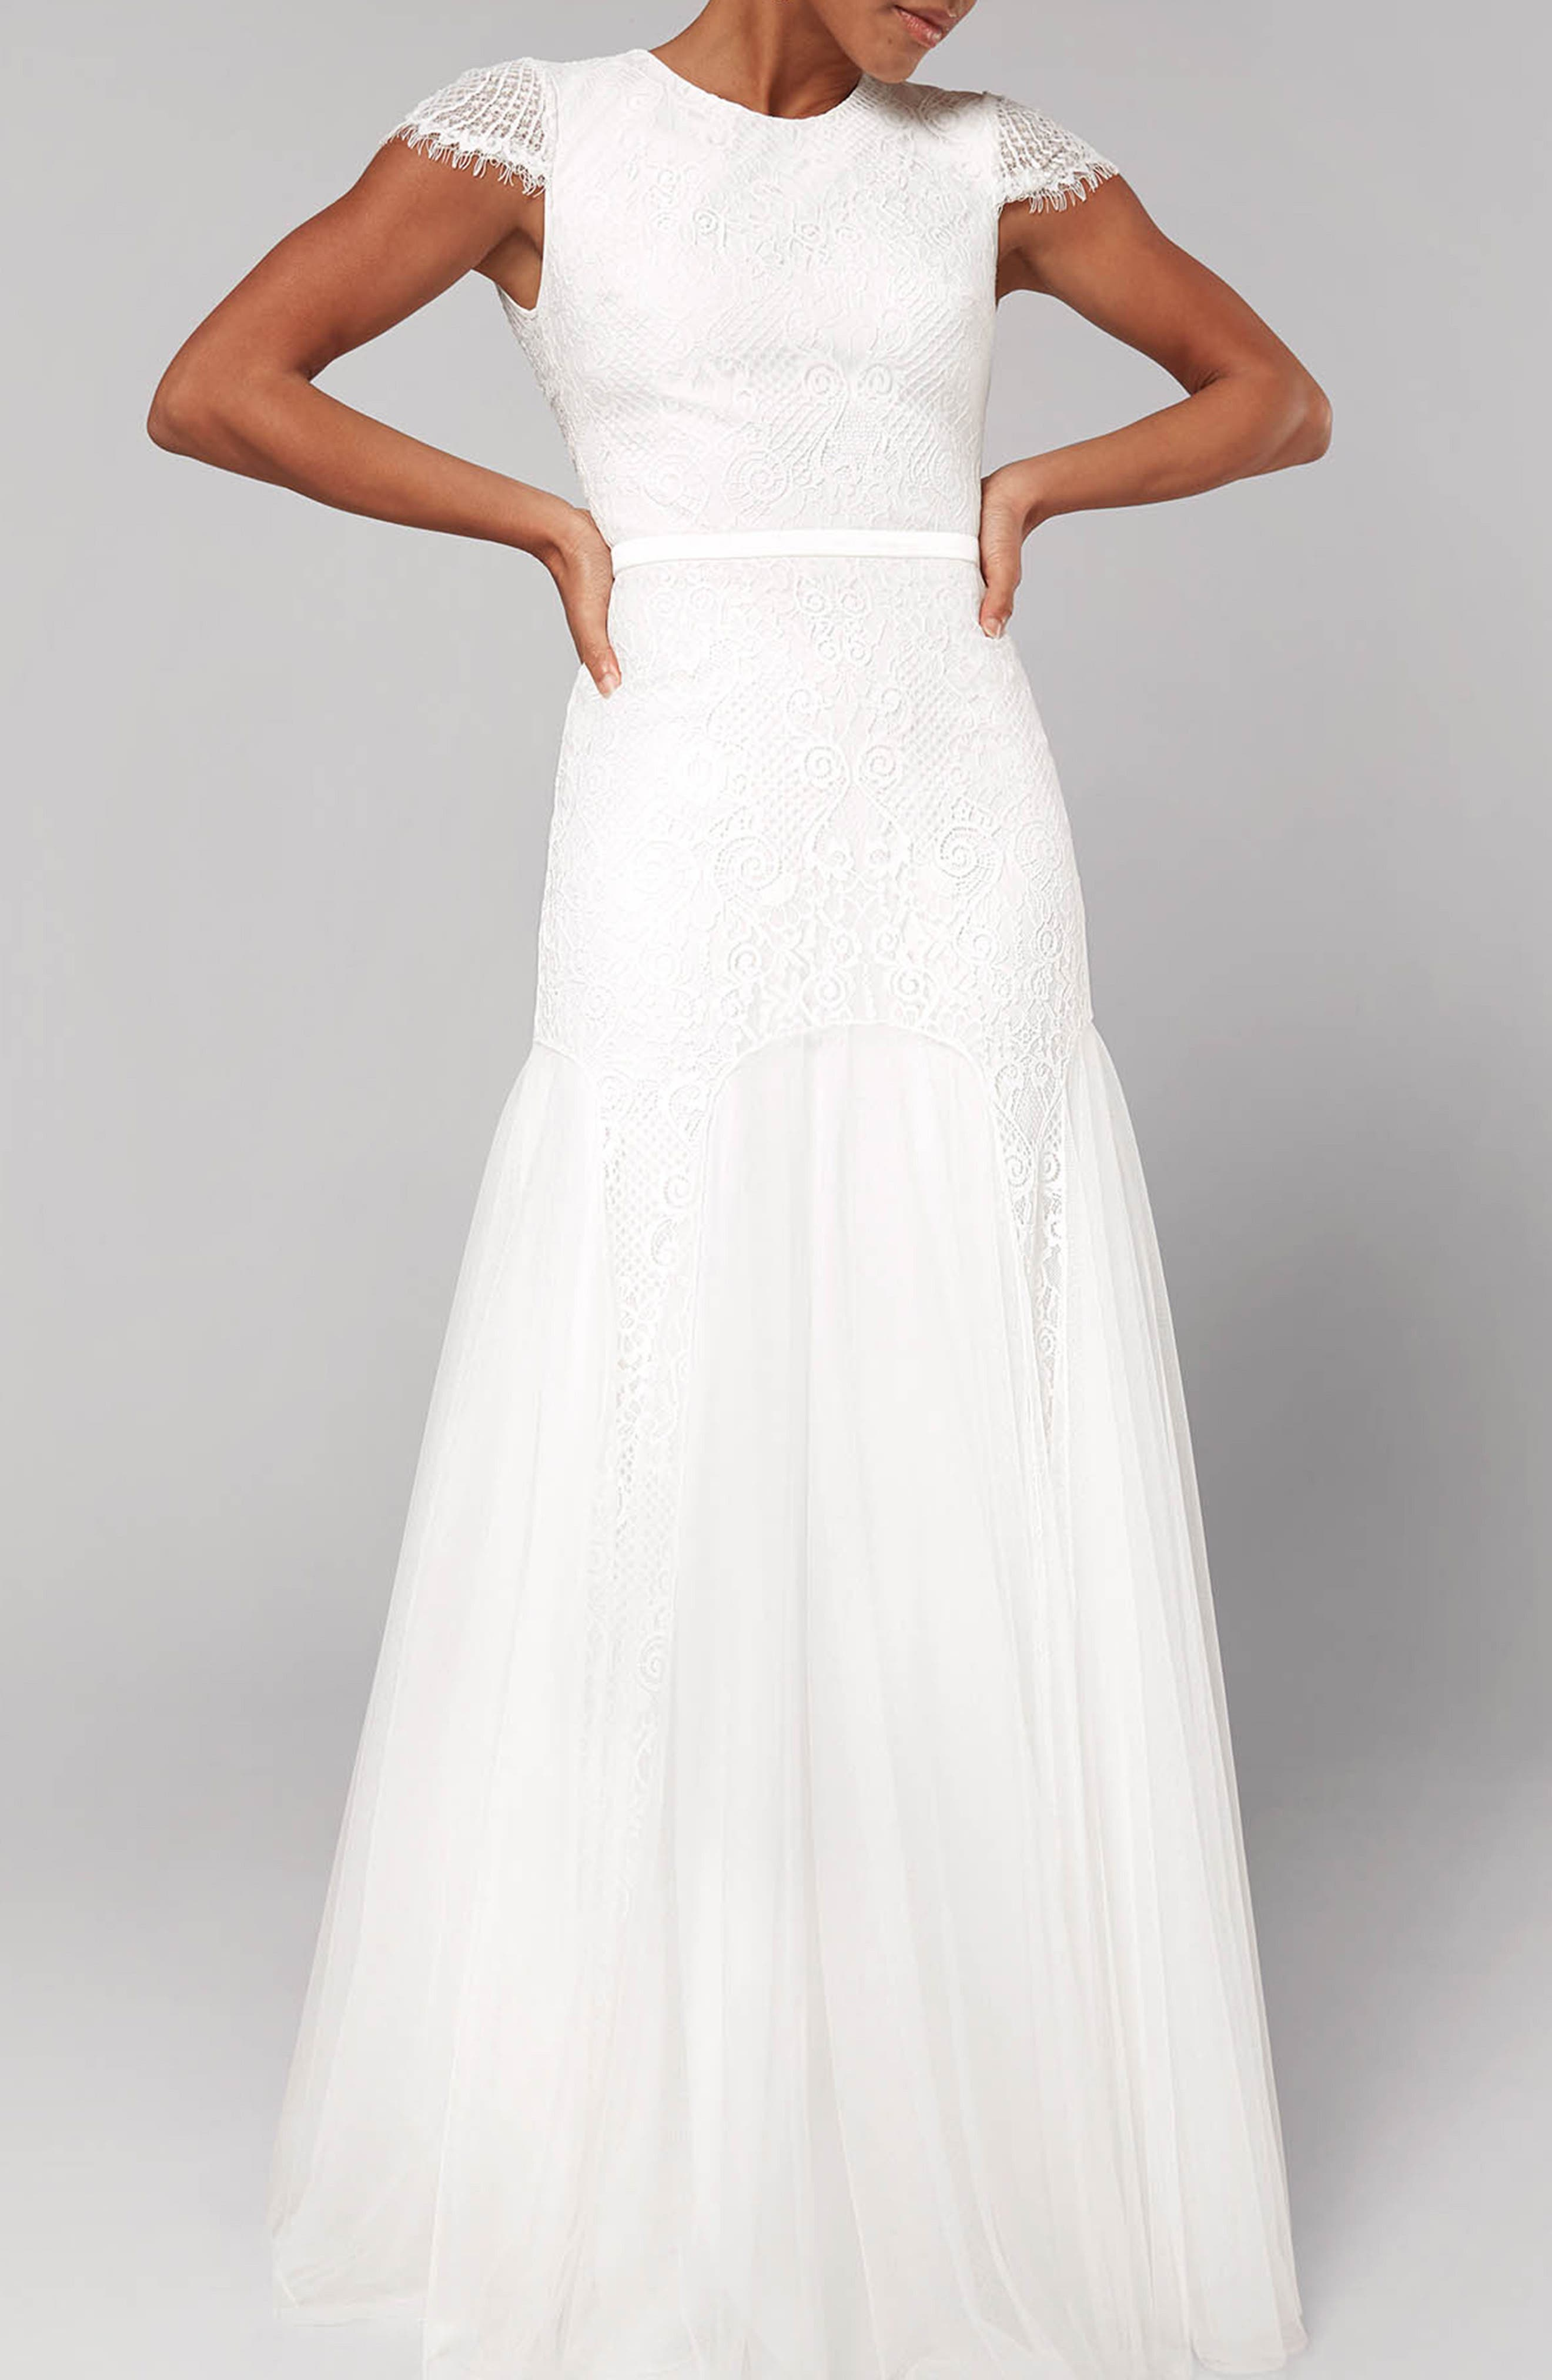 FAME AND PARTNERS Denevue Lace & Tulle A-Line Gown, Main, color, IVORY